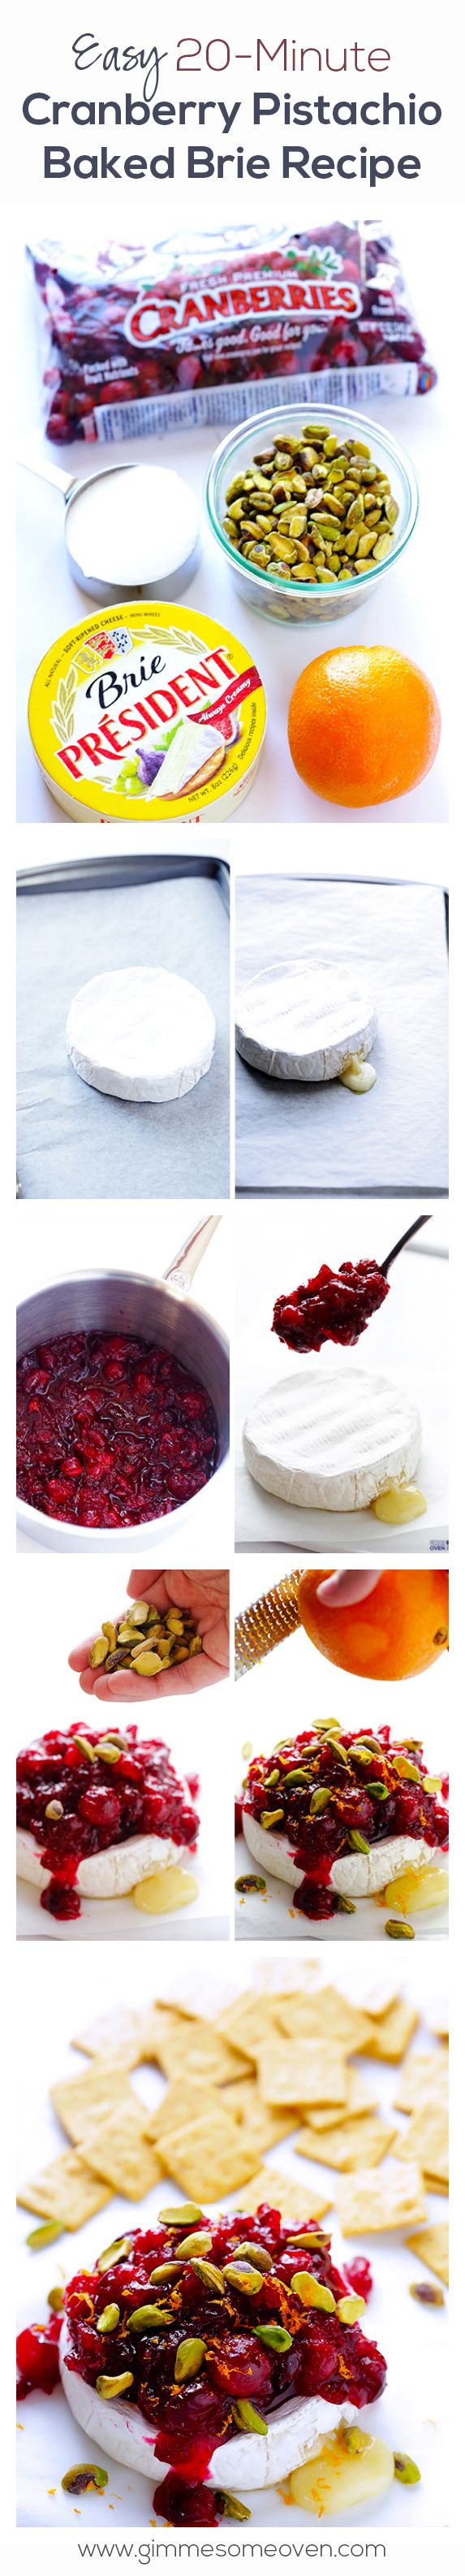 Easy Cranberry Pistachio Baked Brie | gimmesomeoven.com